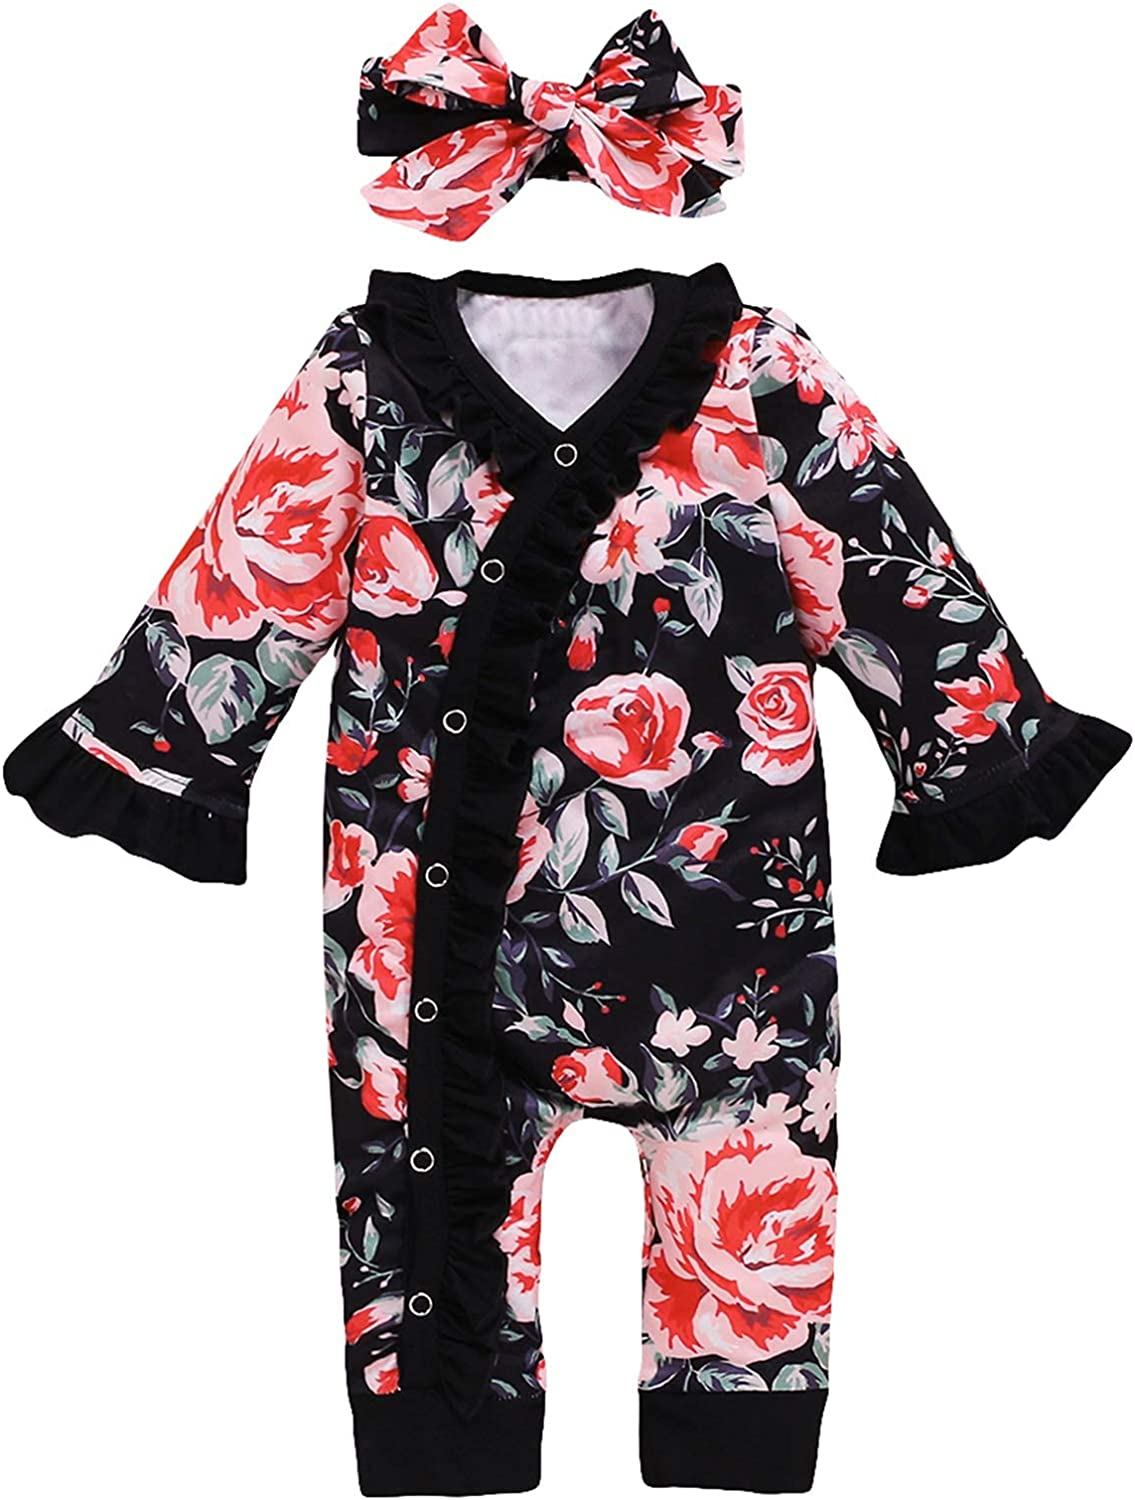 Happidoo NewbornGirlClothes Baby Coming Home Outfit with Headband